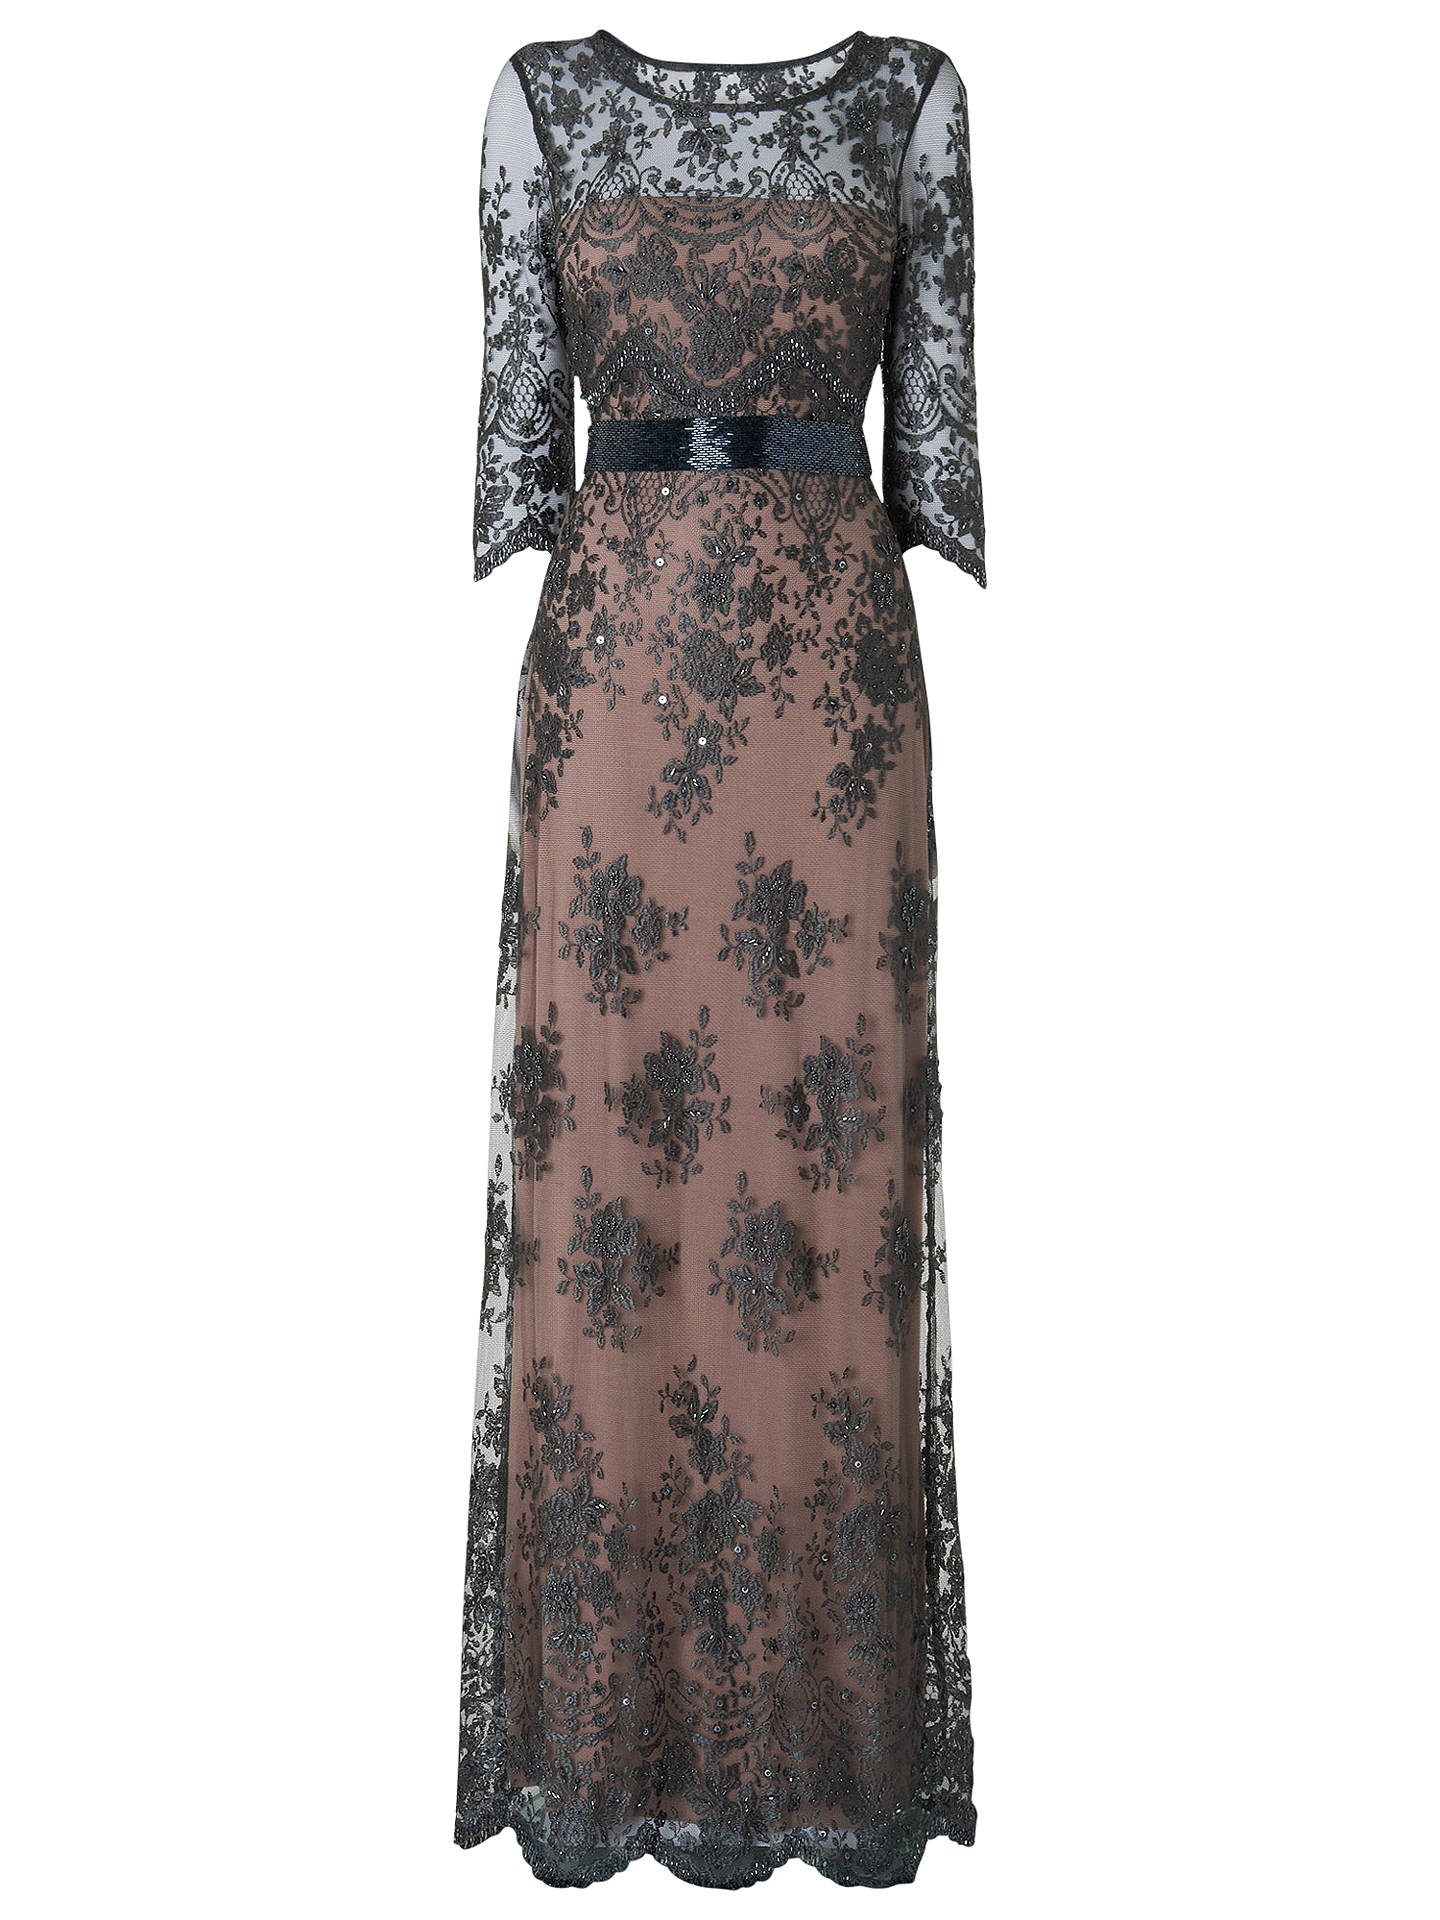 Phase Eight Collection 8 Sabrina Lace Beaded Dress, Charcoal at John ...